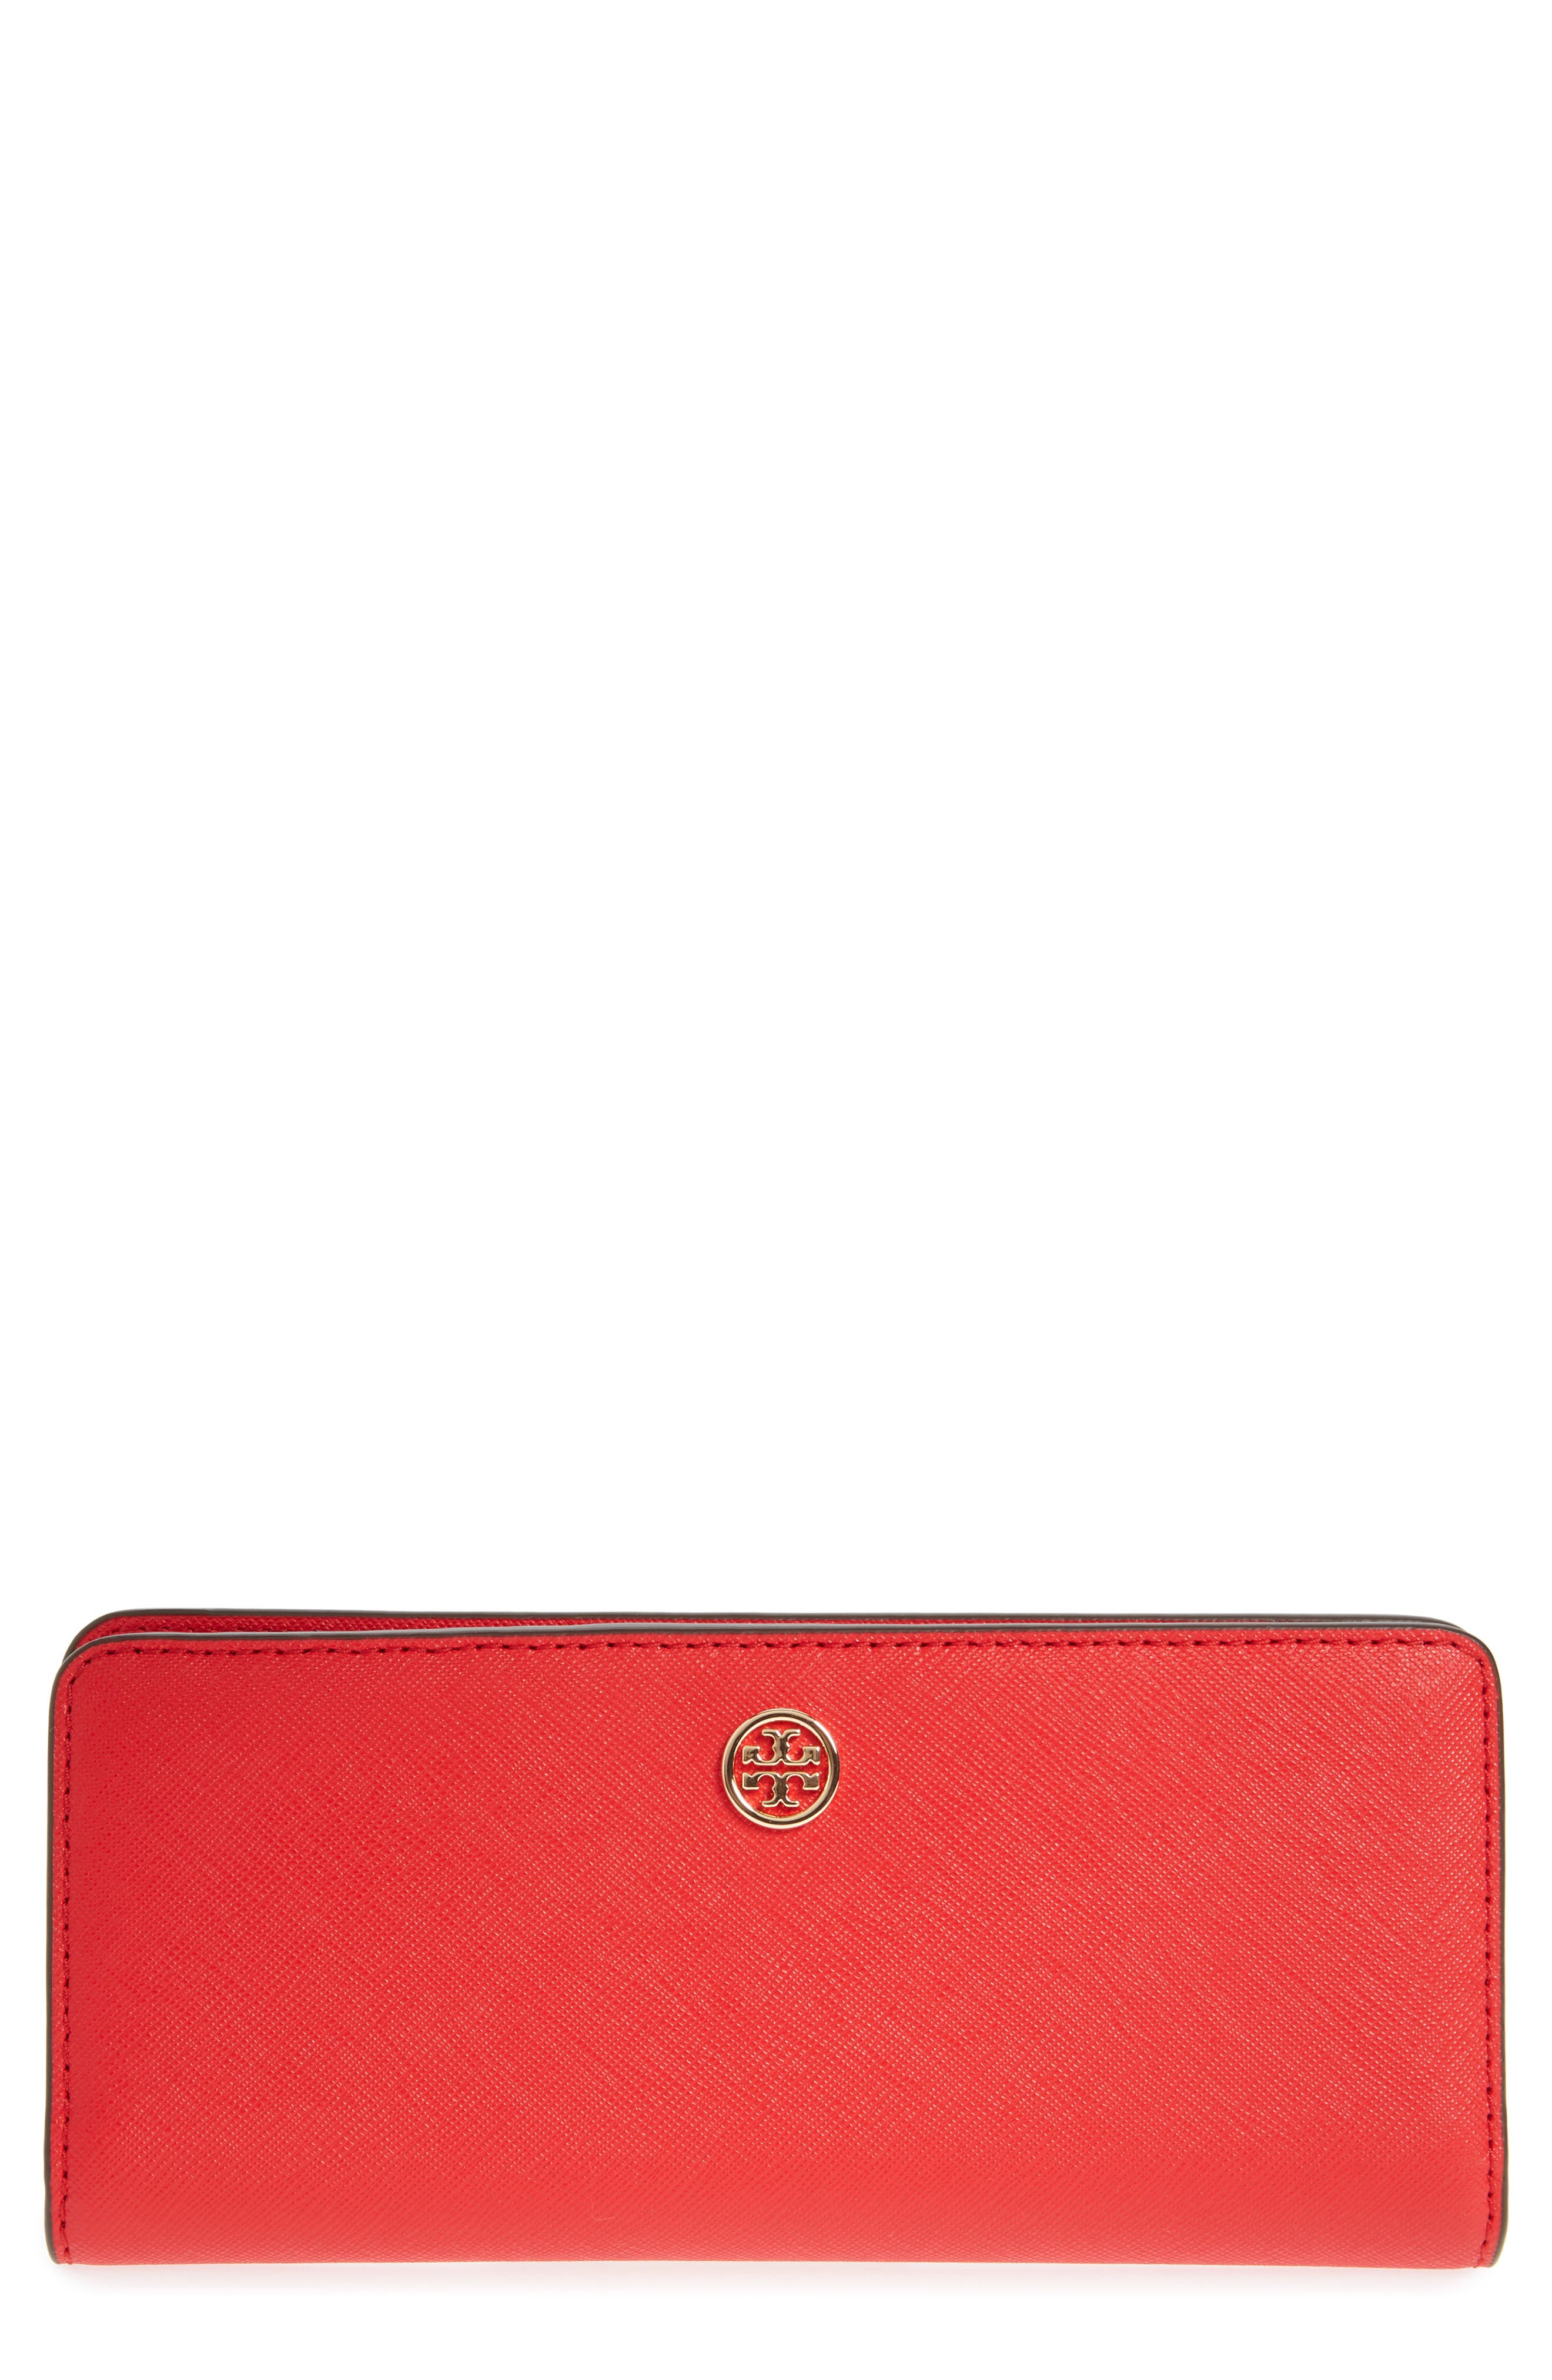 Robinson Saffiano Leather Continental Wallet,                             Main thumbnail 1, color,                             BRILLIANT RED